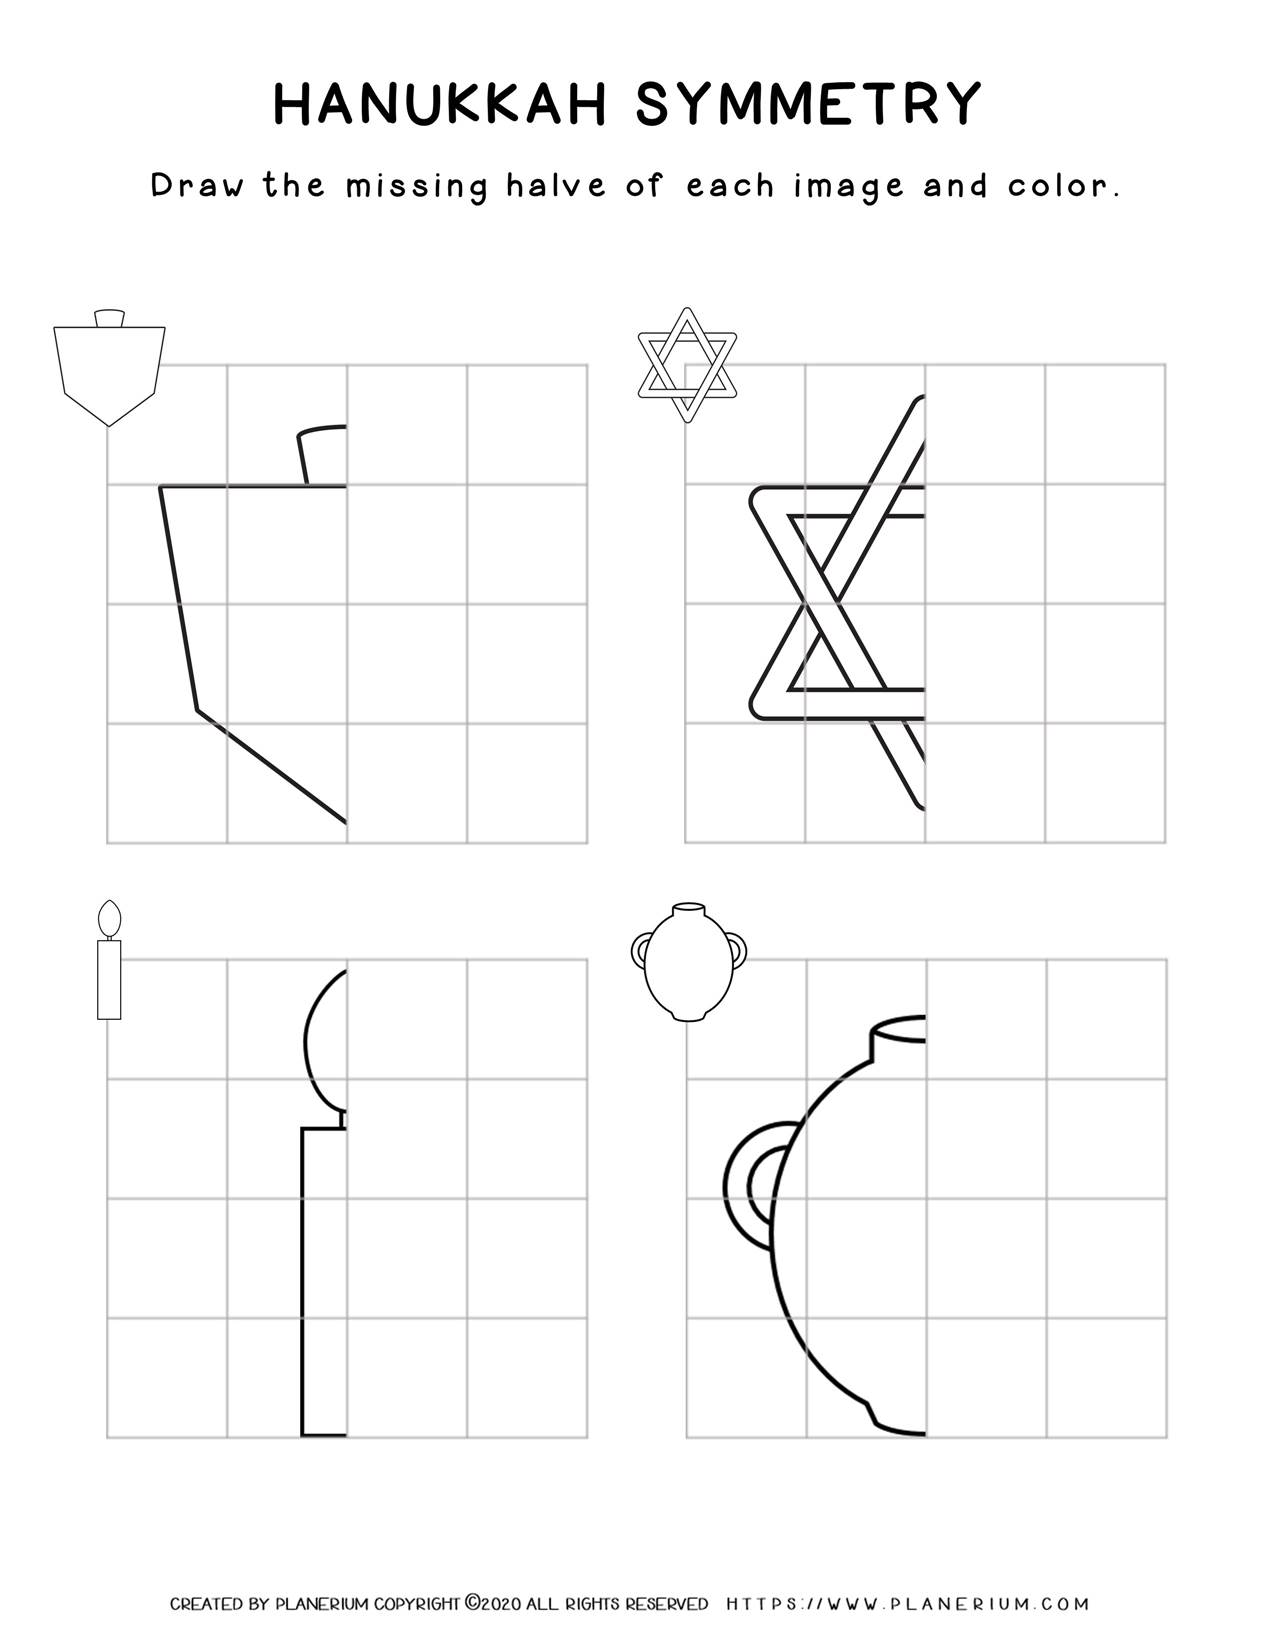 Symmetry Drawing - Hanukkah Worksheet - Free Printable | Planerium